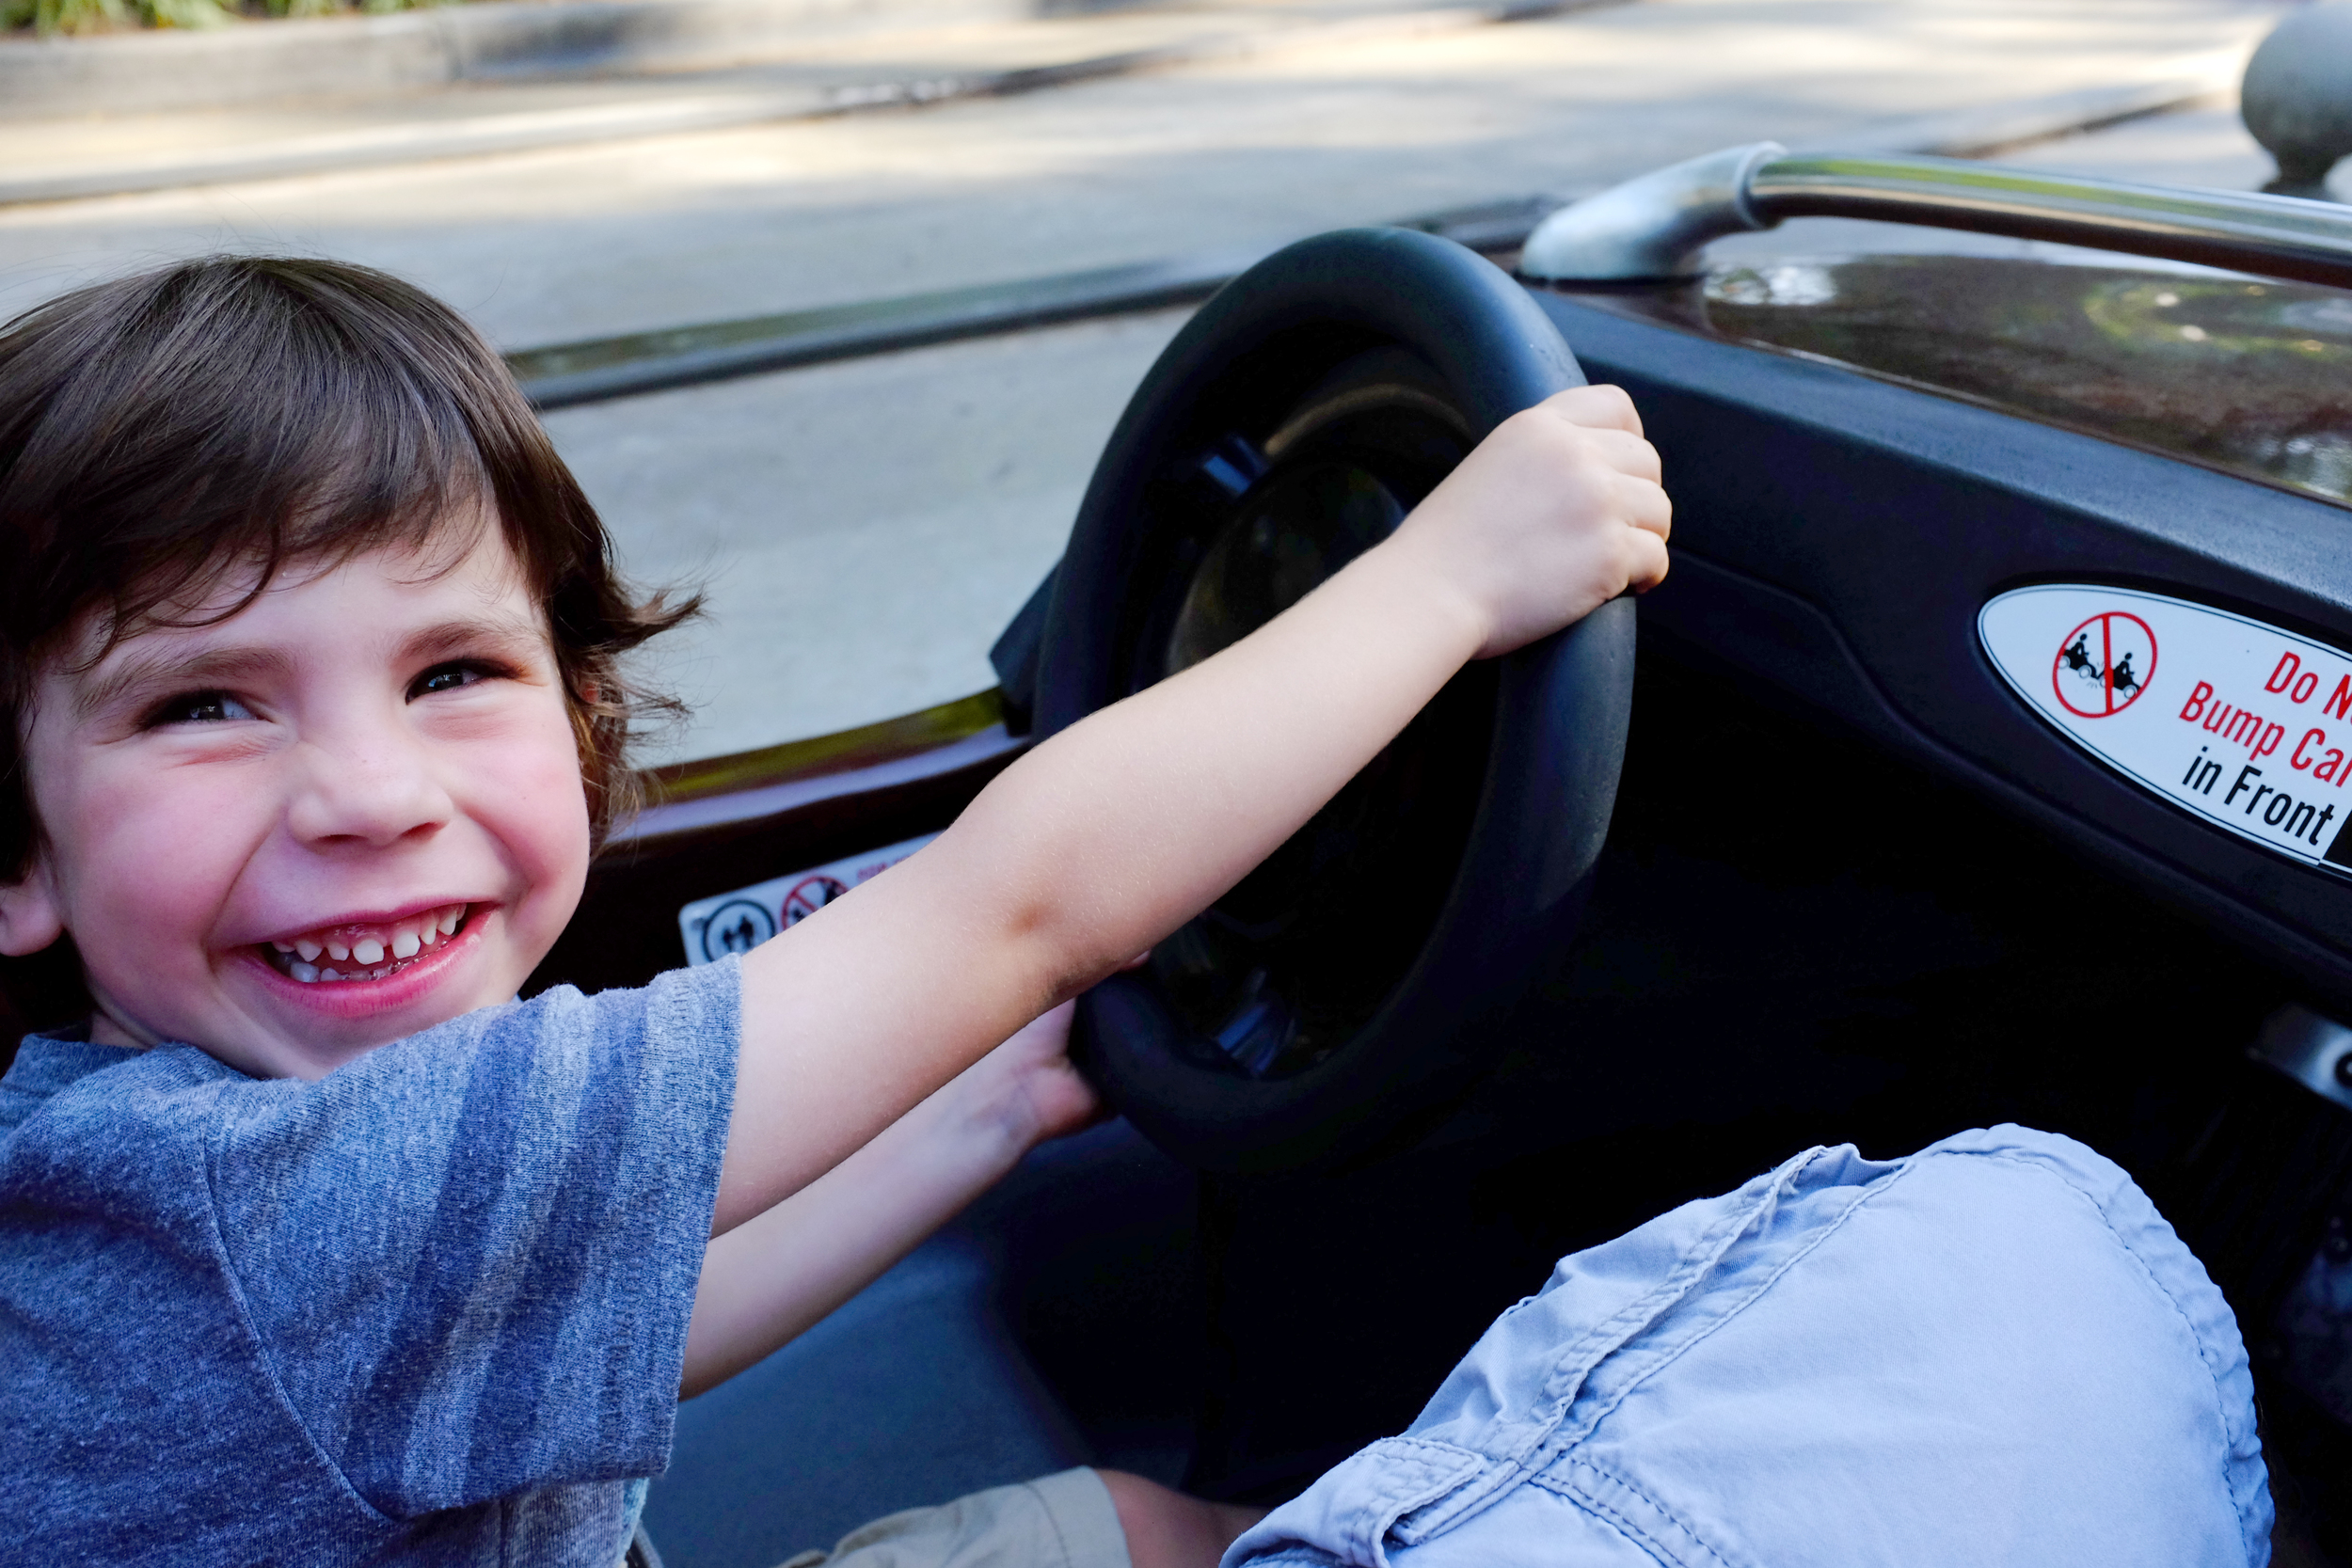 All Jack wants to do when he grows up is drive, thus Autopia one of his favorite rides